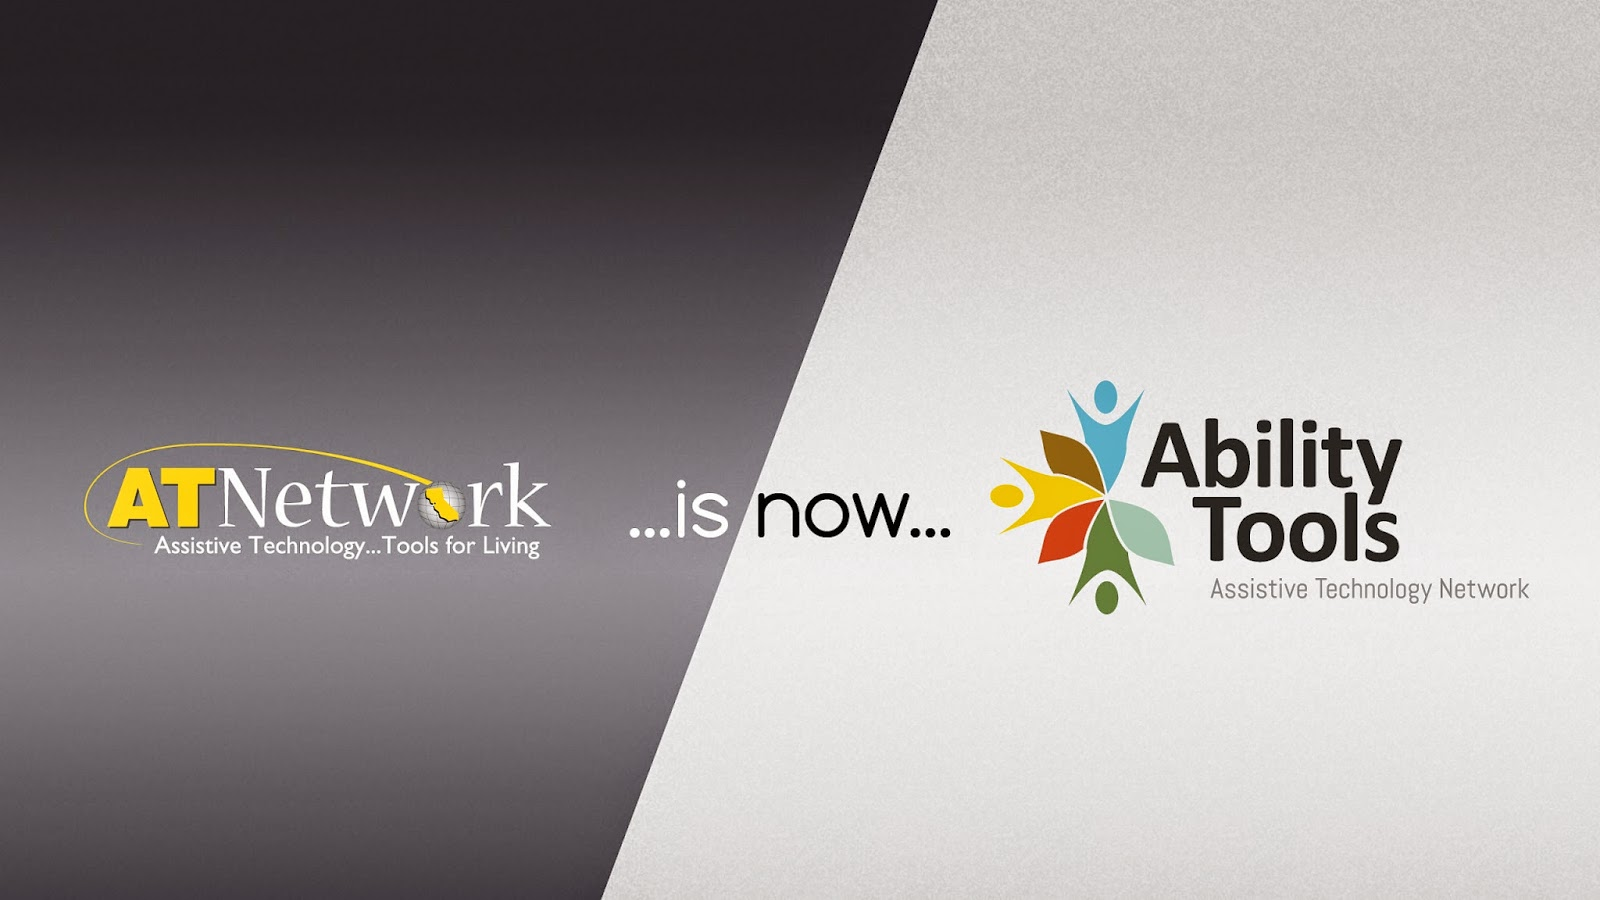 image of old logo and name AT Network is now Ability Tools new name and logo